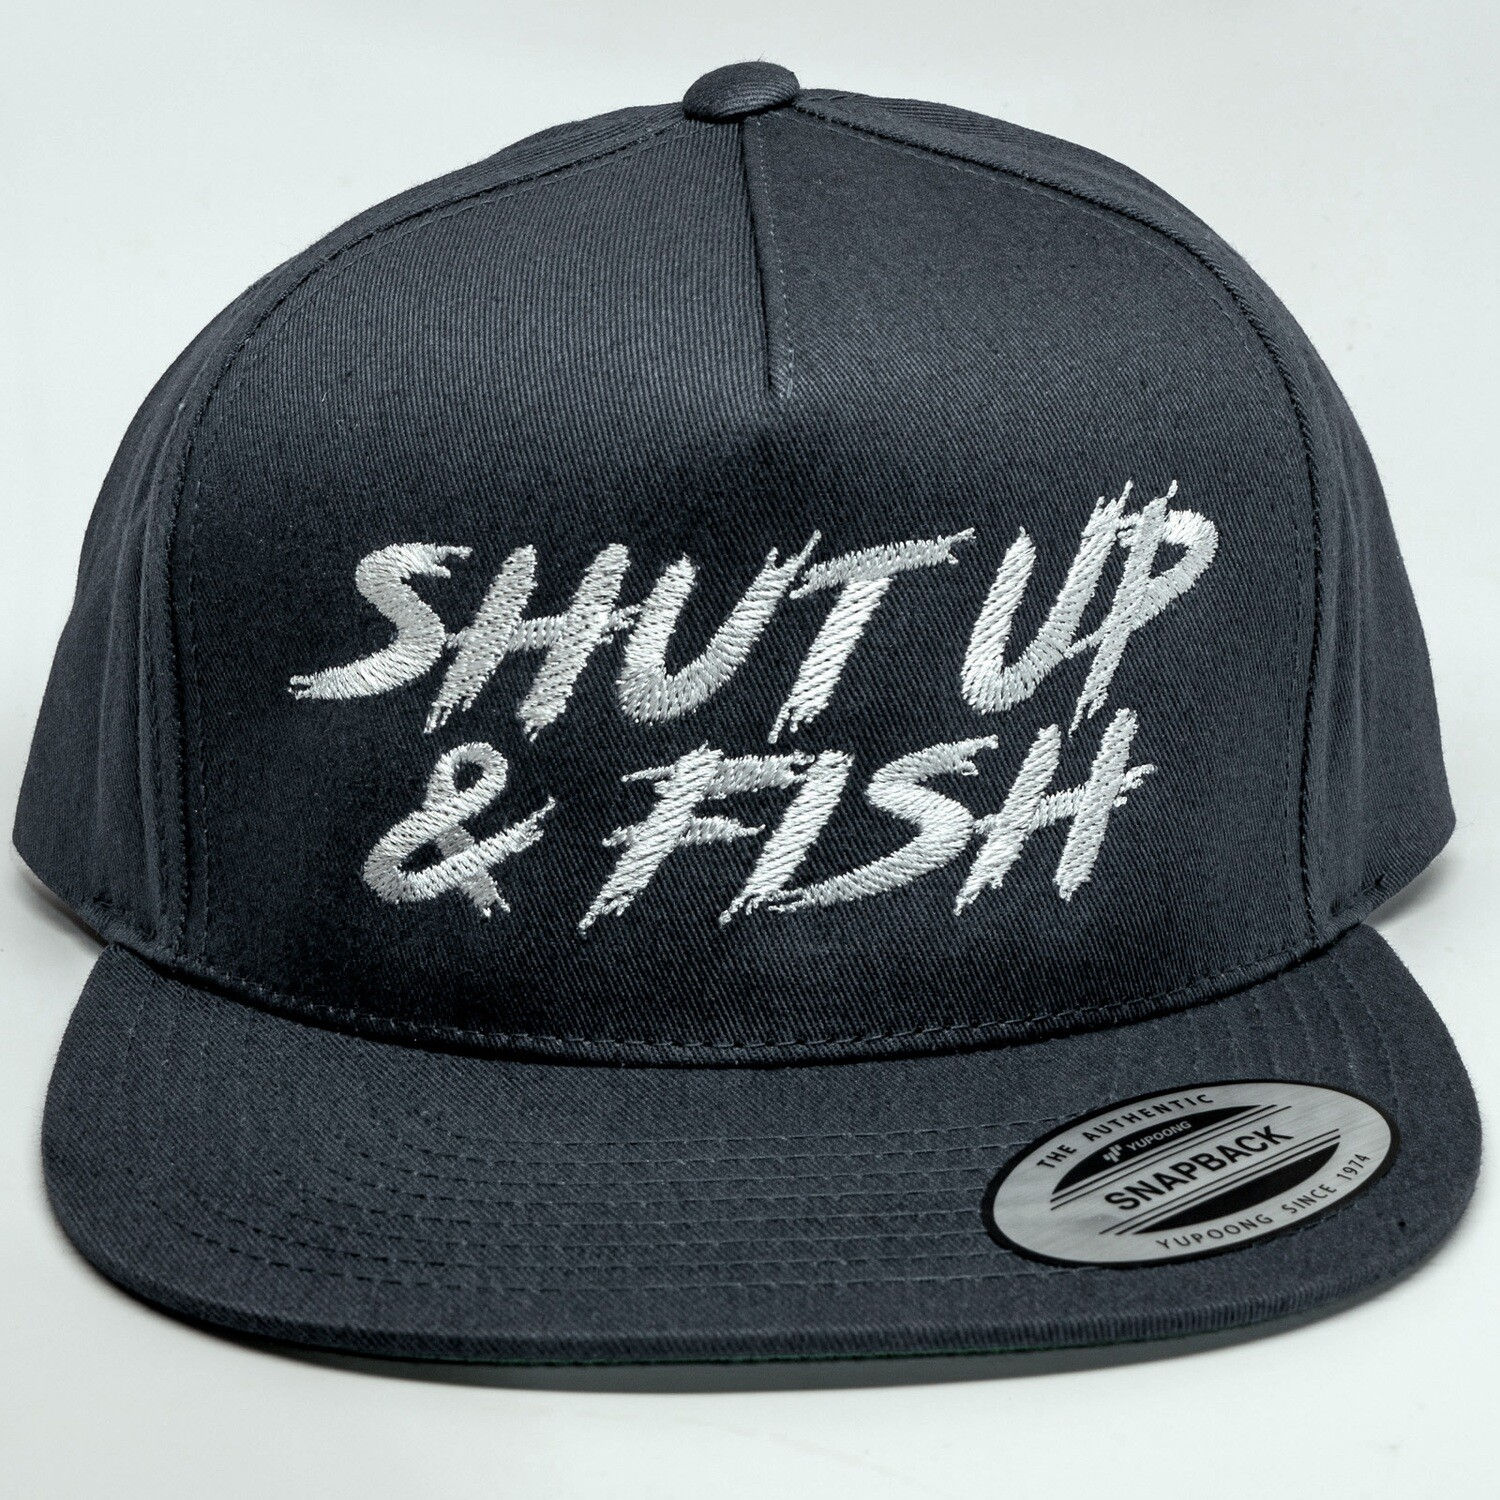 Shut Up & Fish Snapback Hat